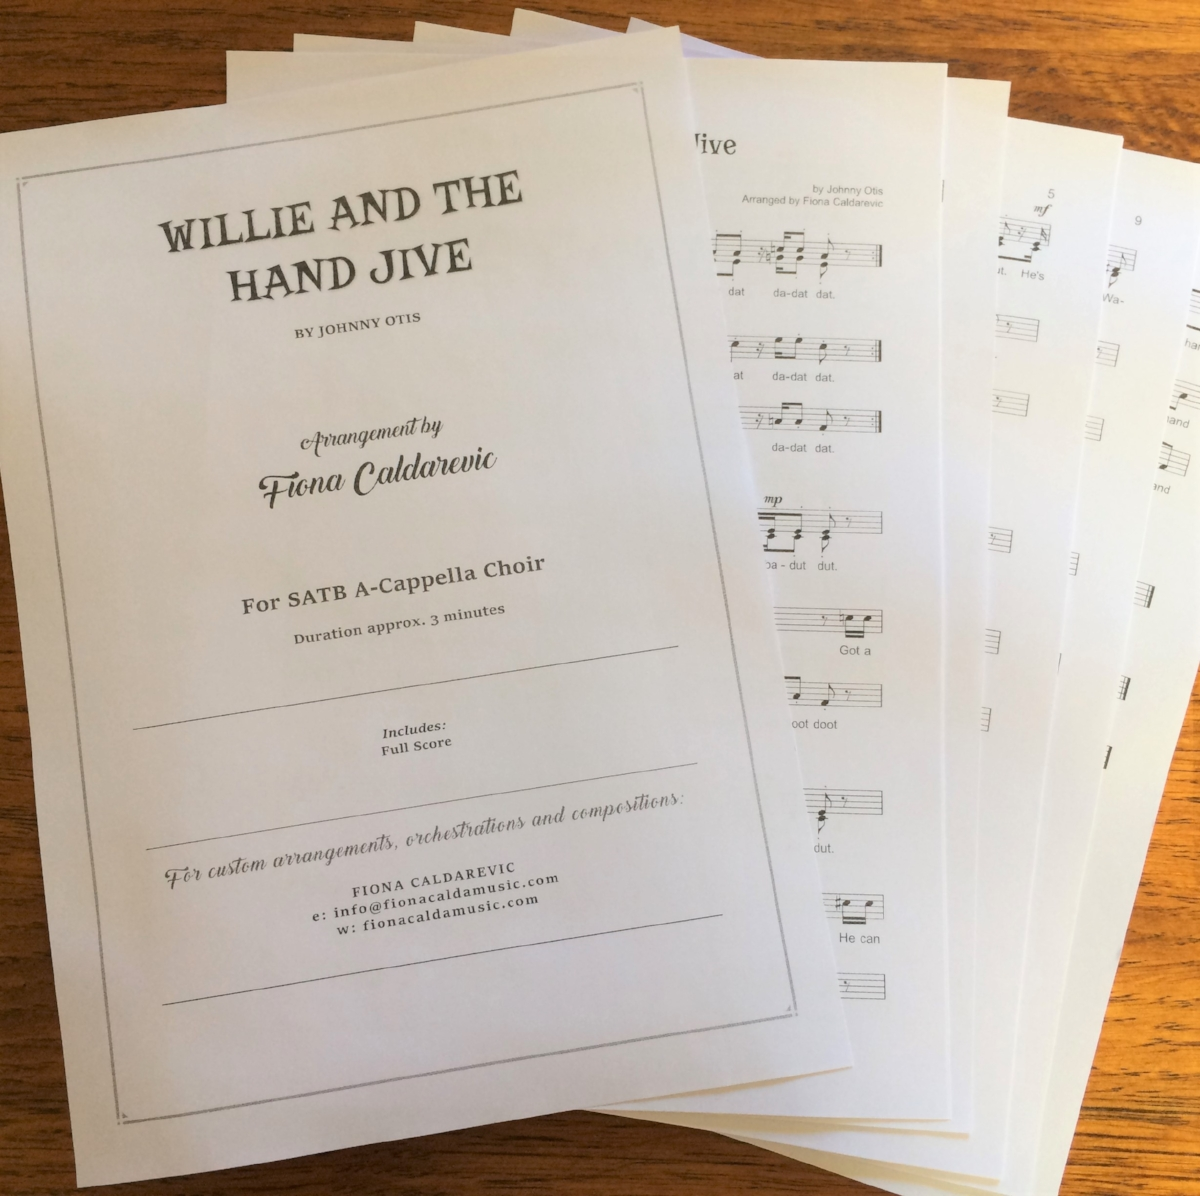 Willie and the hand jive sheets.JPG